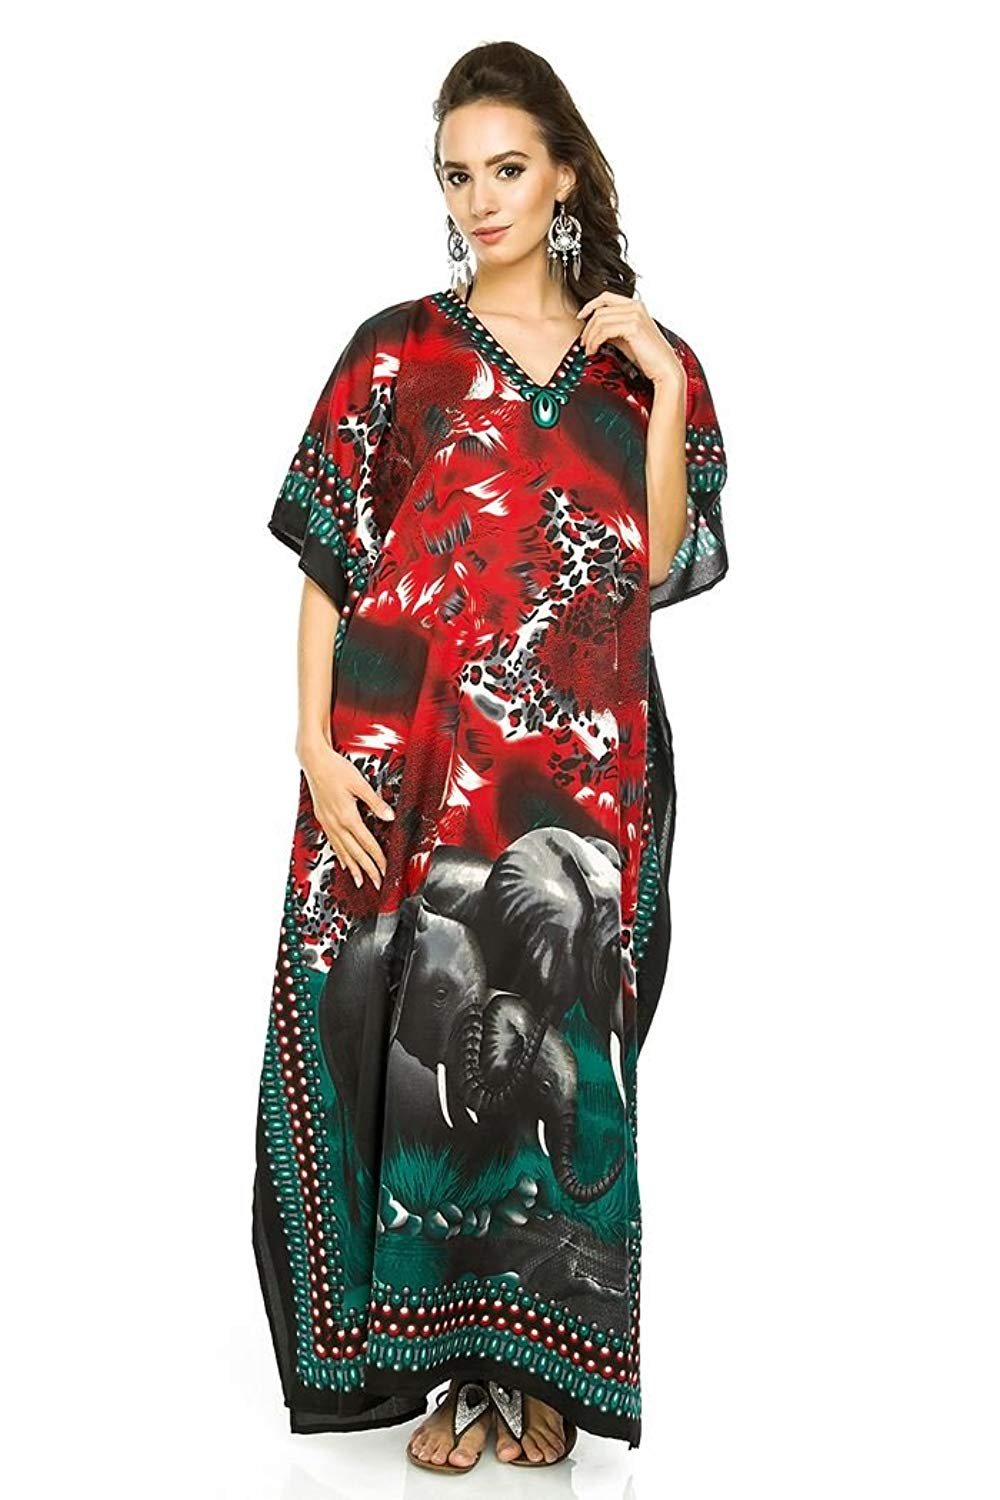 834599ec28 Get Quotations · Looking Glam New Ladies Oversized Maxi Kimono Kaftan Tunic  Kaftan Dress Free Size